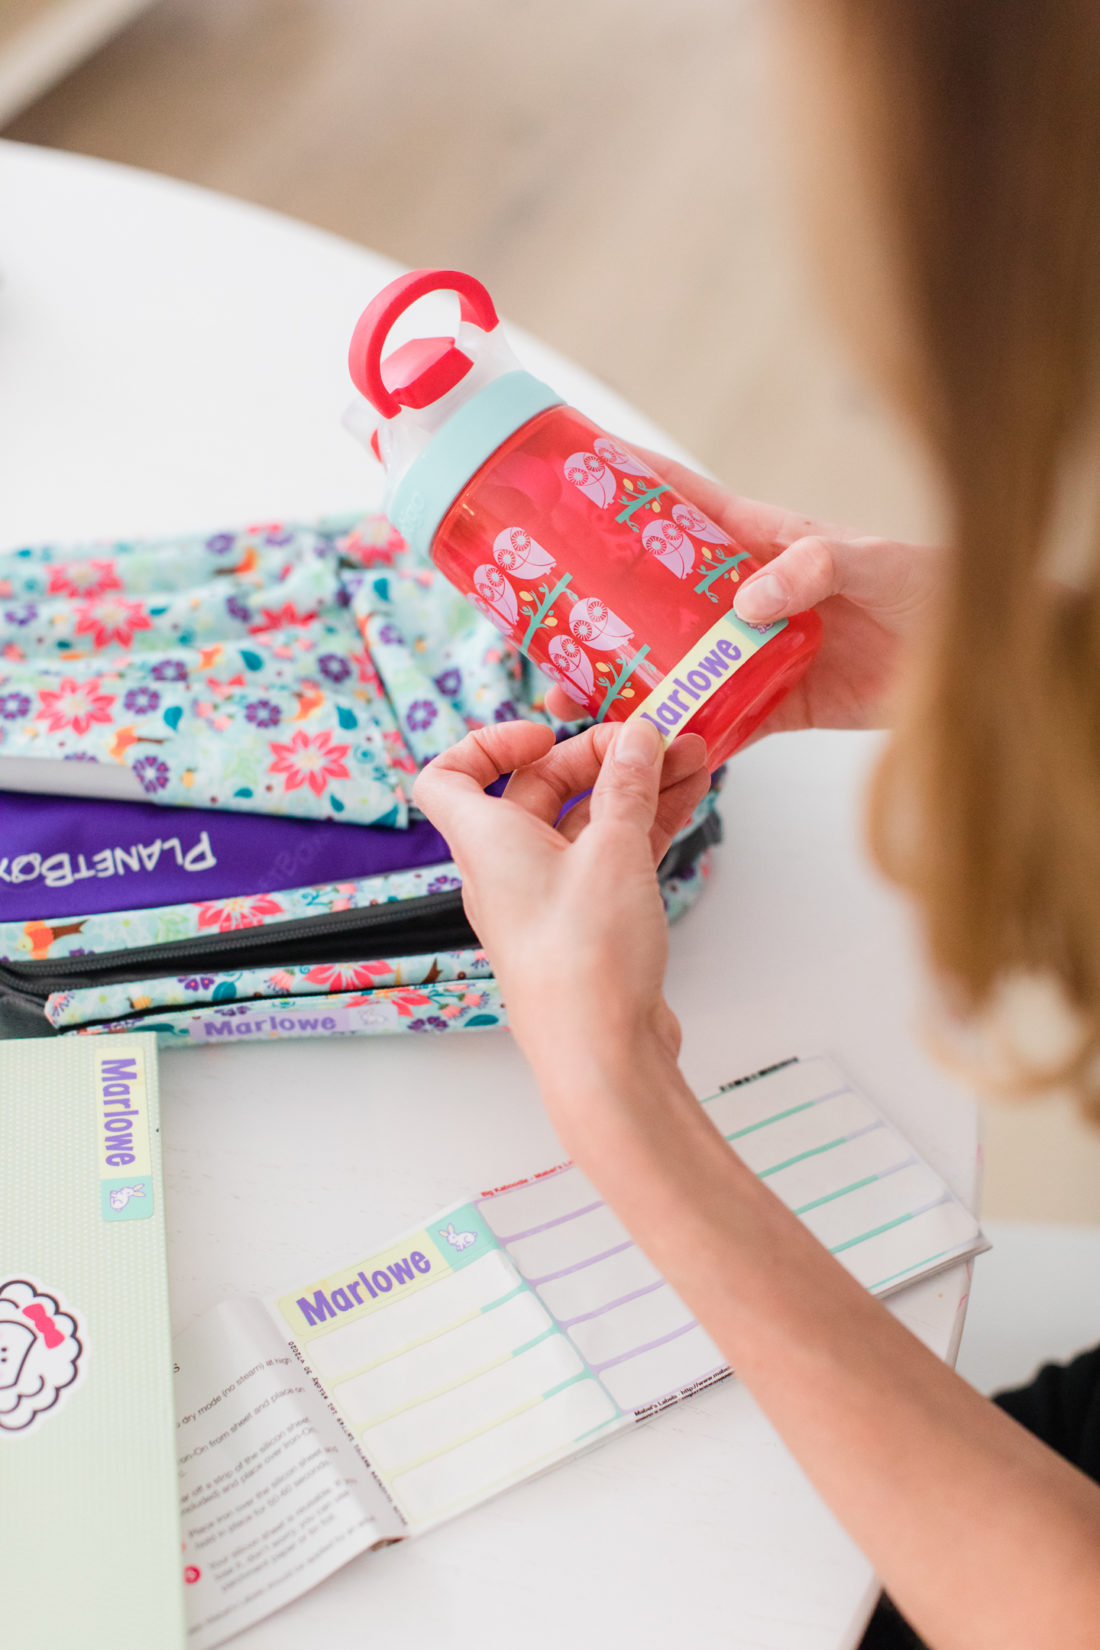 Eva Amurri Martino labels a water bottle to prepare daughter Marlowe for school